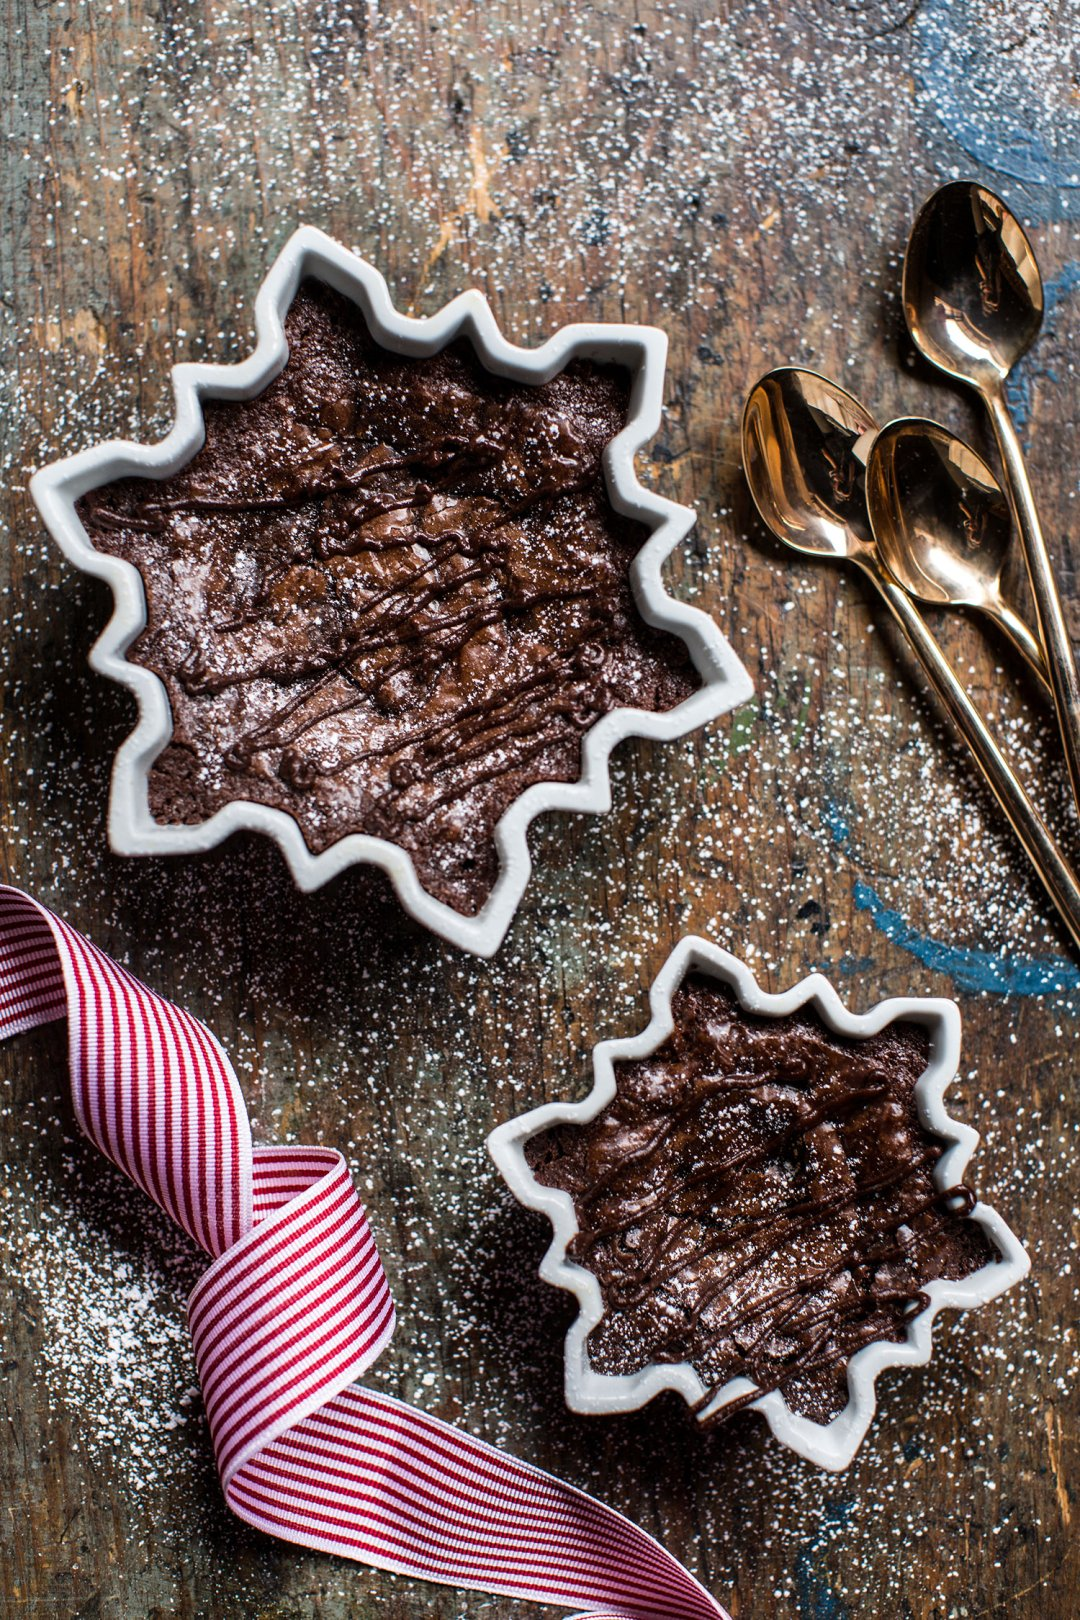 Two chocolate brownie cakes in snowflake-shaped dishes next to a few gold spoons on a wood countertop